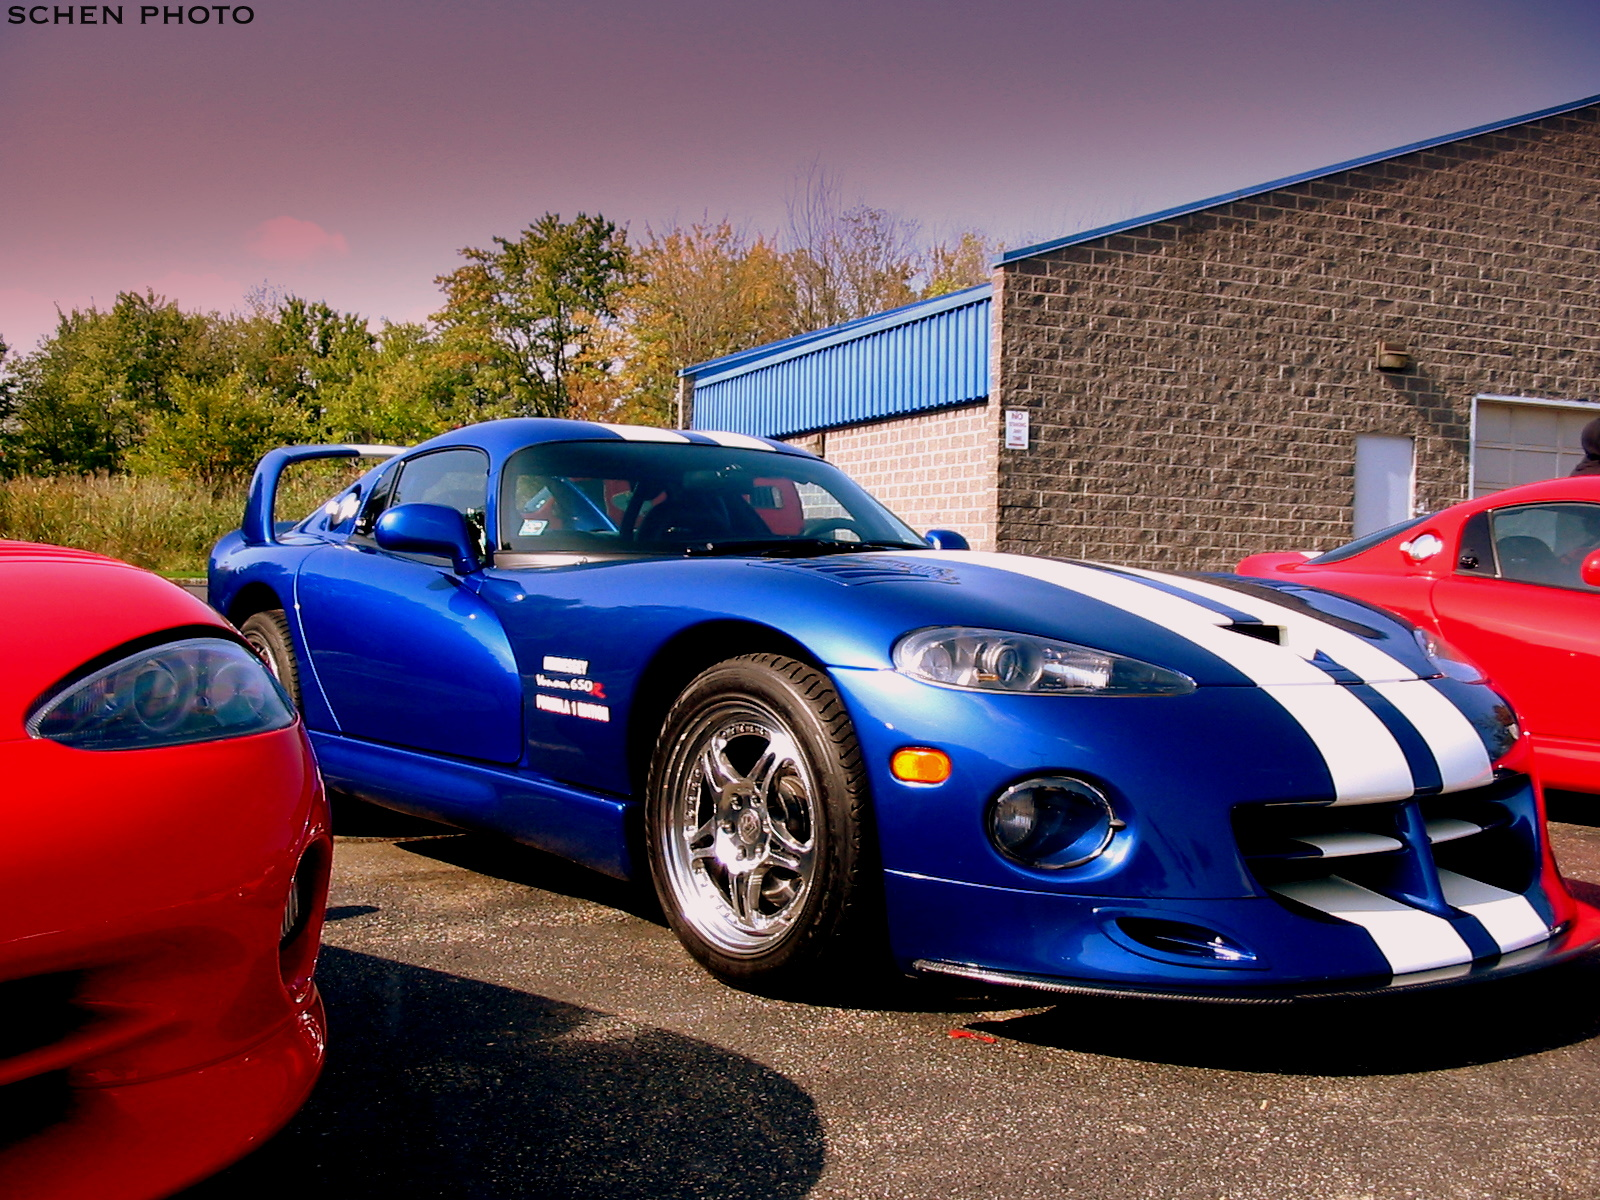 a hennessey venom 650r based on a 1996 dodge viper gts